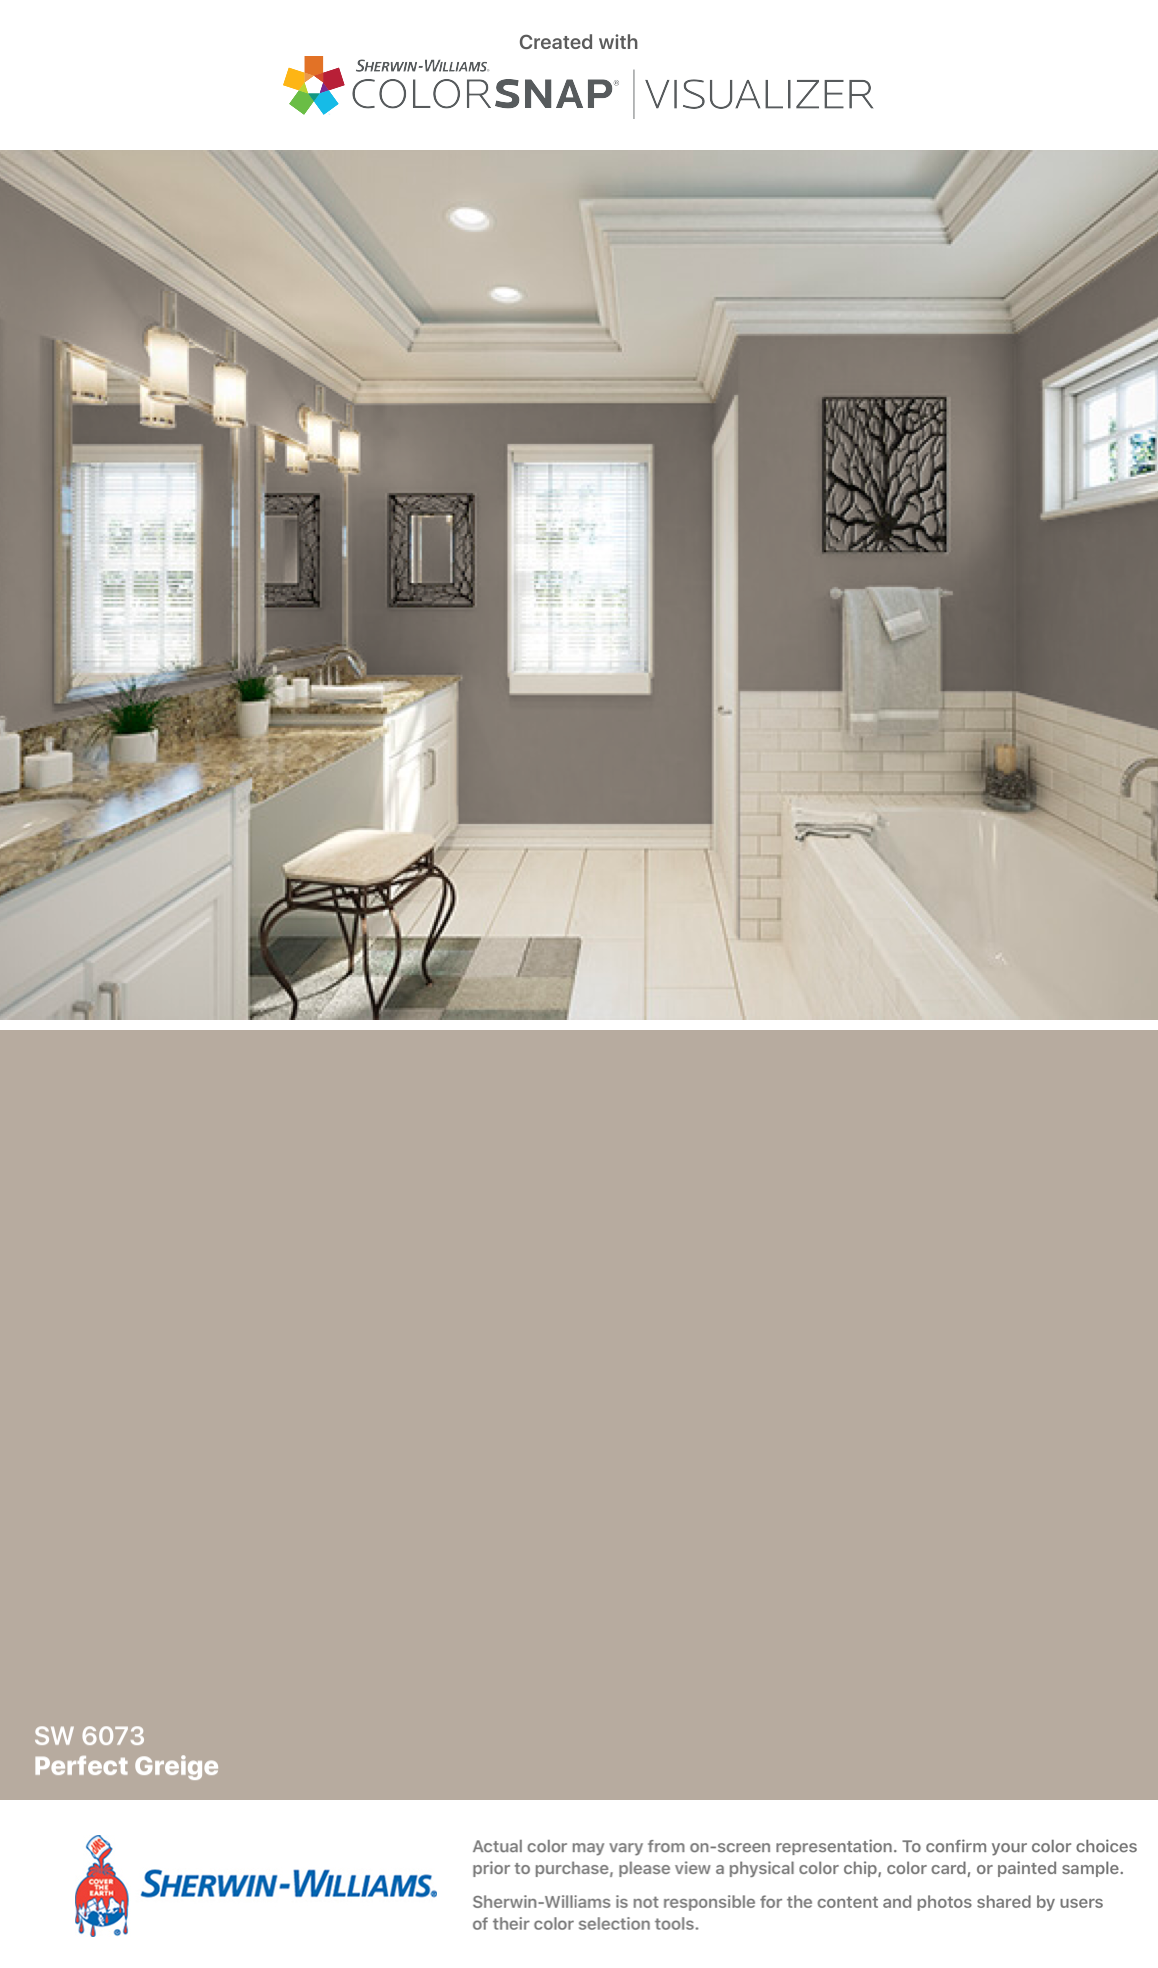 Sherwin williams perfect greige ideas pictures remodel - I Found This Color With Colorsnap Visualizer For Iphone By Sherwin Williams Perfect Greige Sw